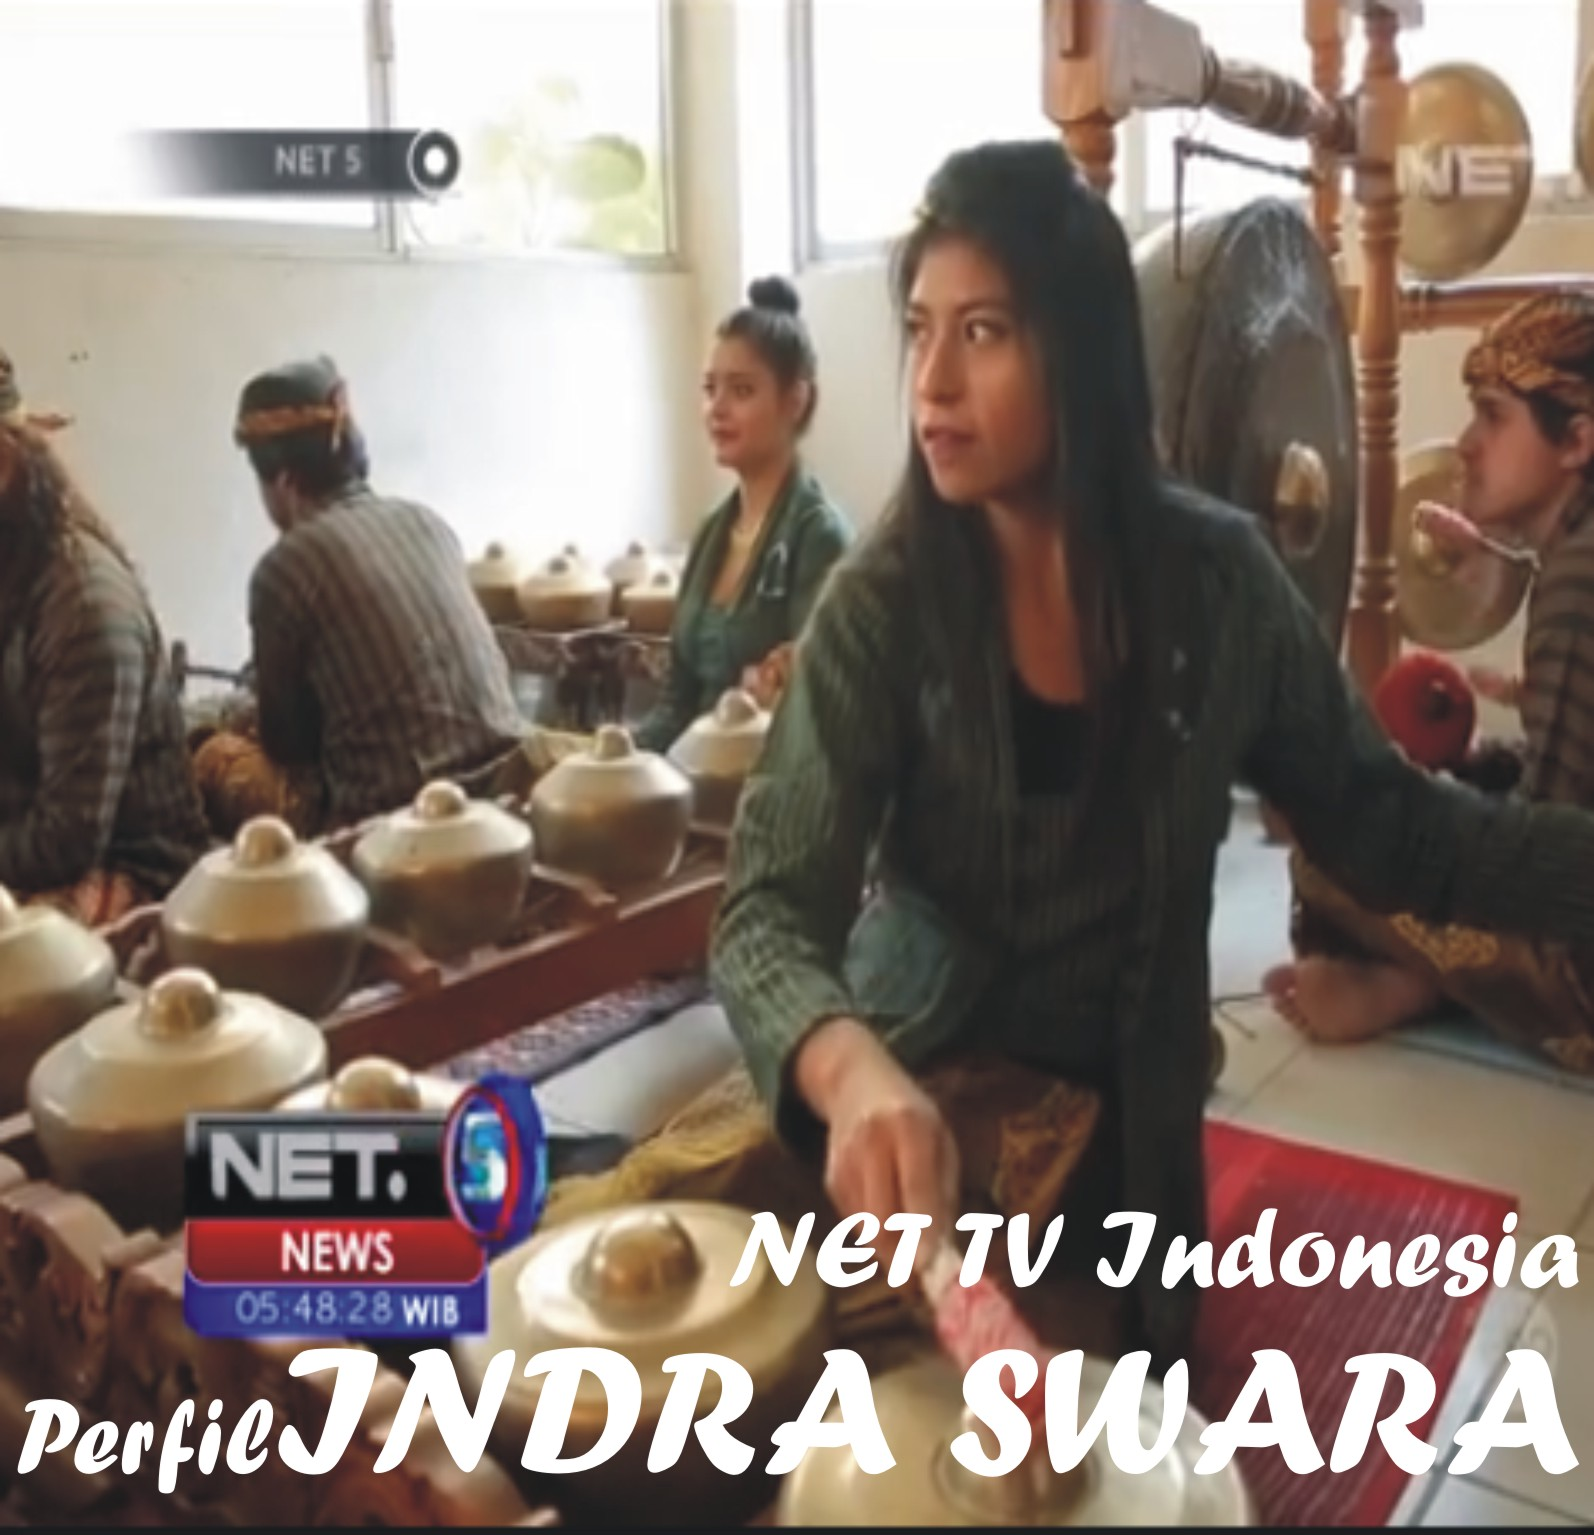 about INDRA SWARA